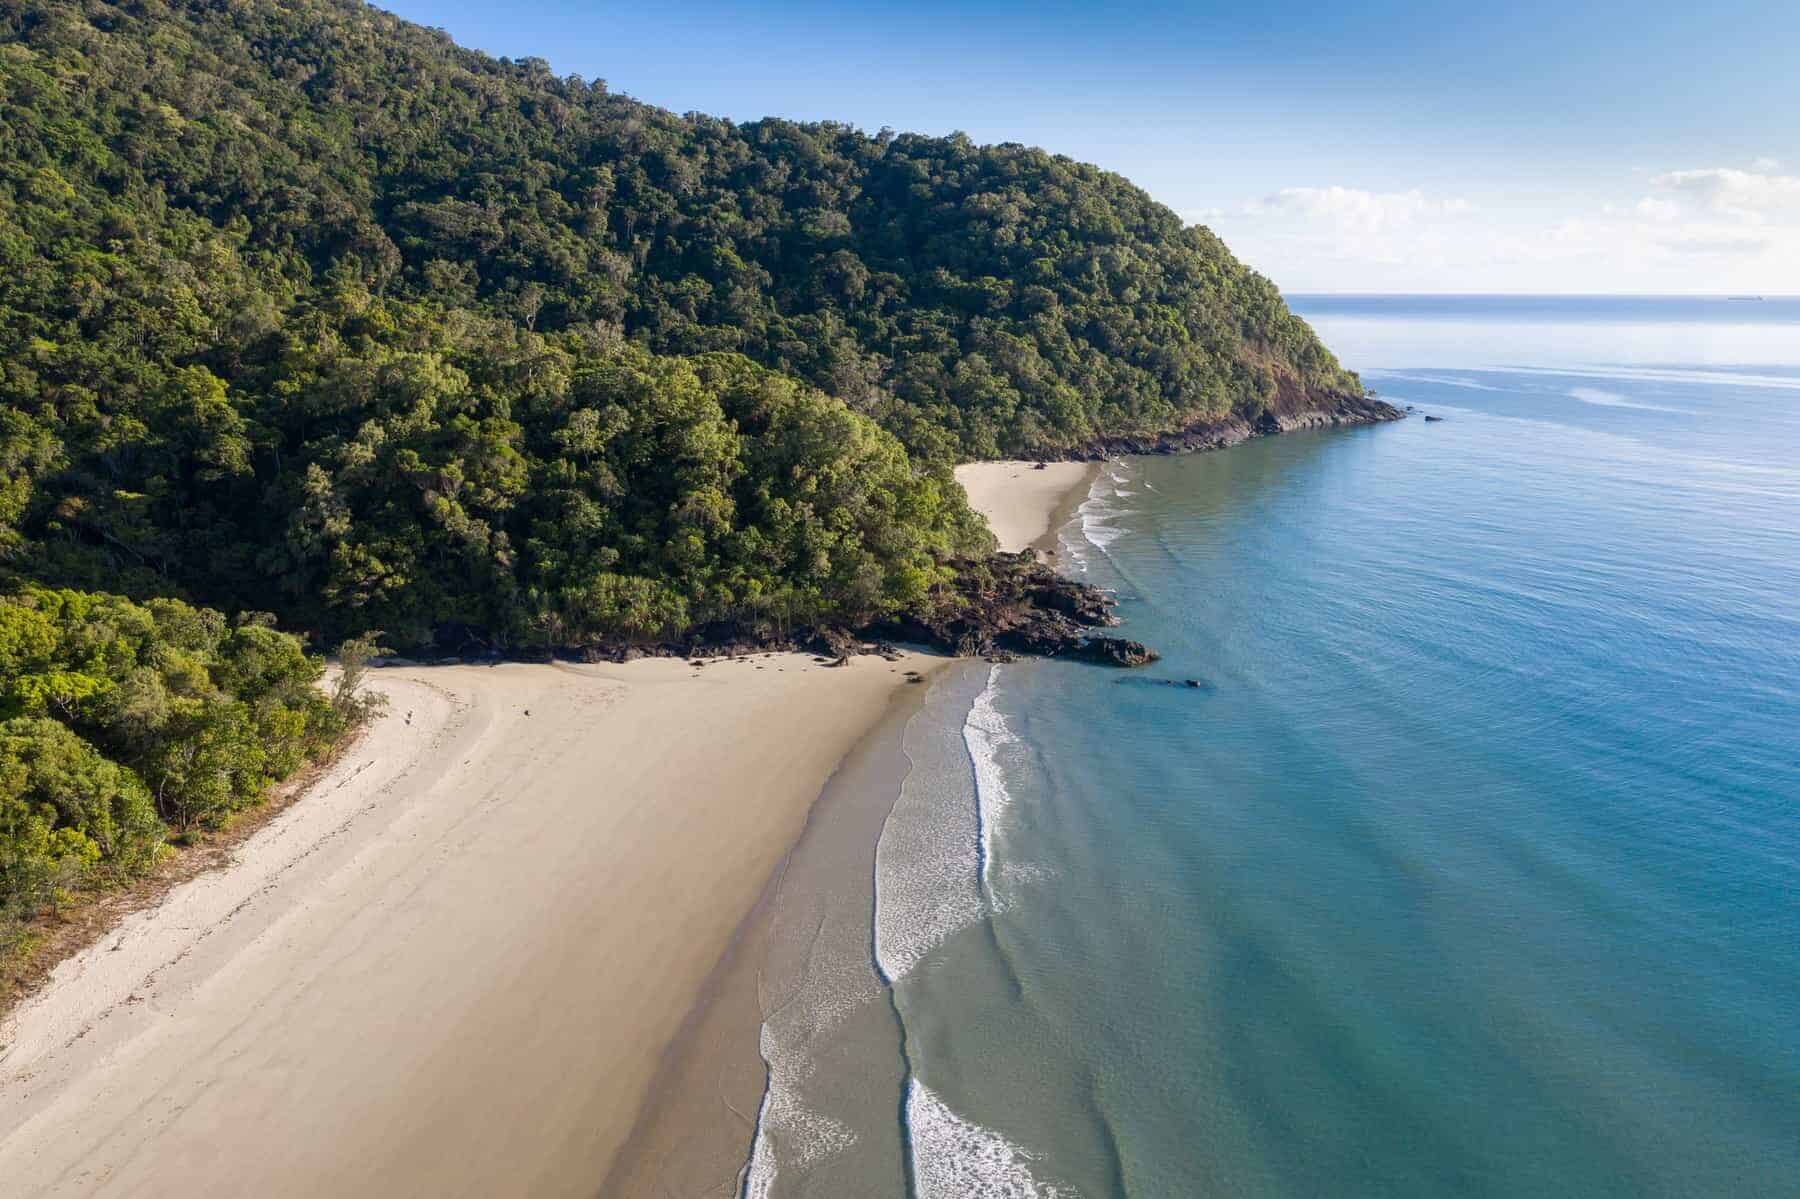 Noah Beach located on the Daintree coast north of Cairns. The rainforest meets the ocean in this pristine section of coastland in Queensland Australia.